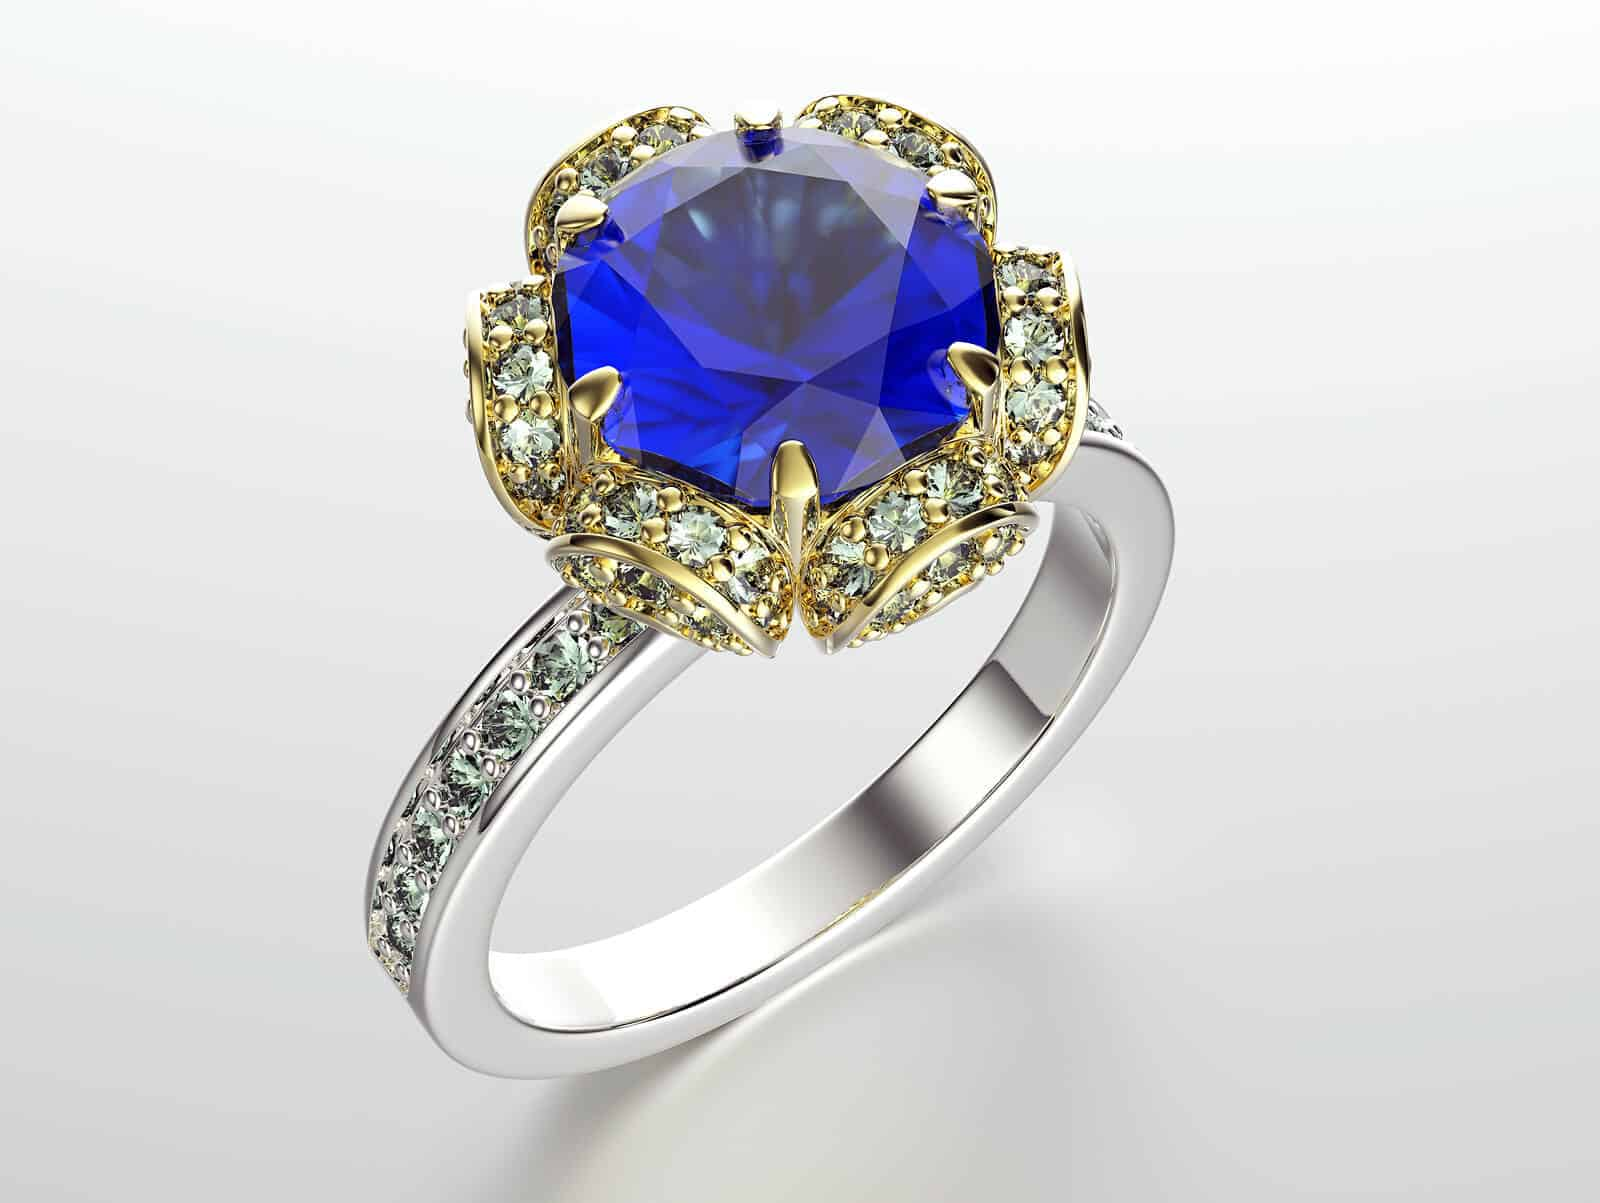 How To Tell If A Sapphire Is Real Jewelry Guide